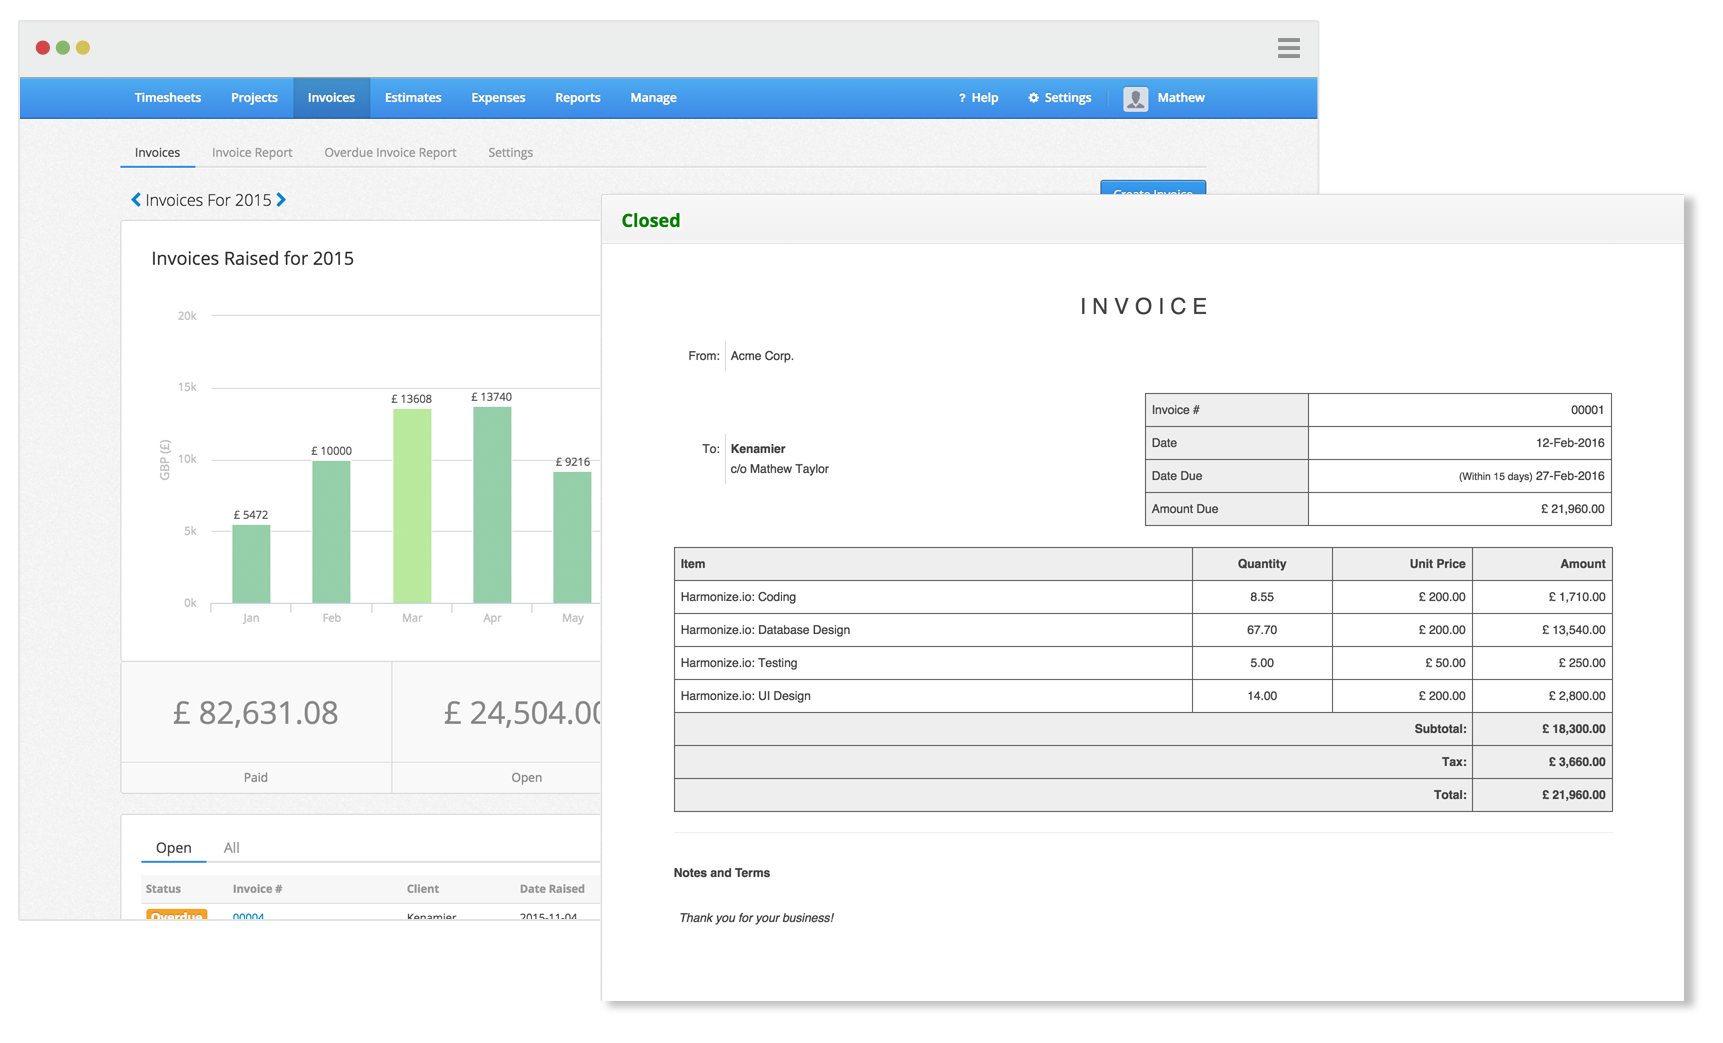 Online Time Tracking Software Invoicing App For Online Billing - Invoice tracking software free